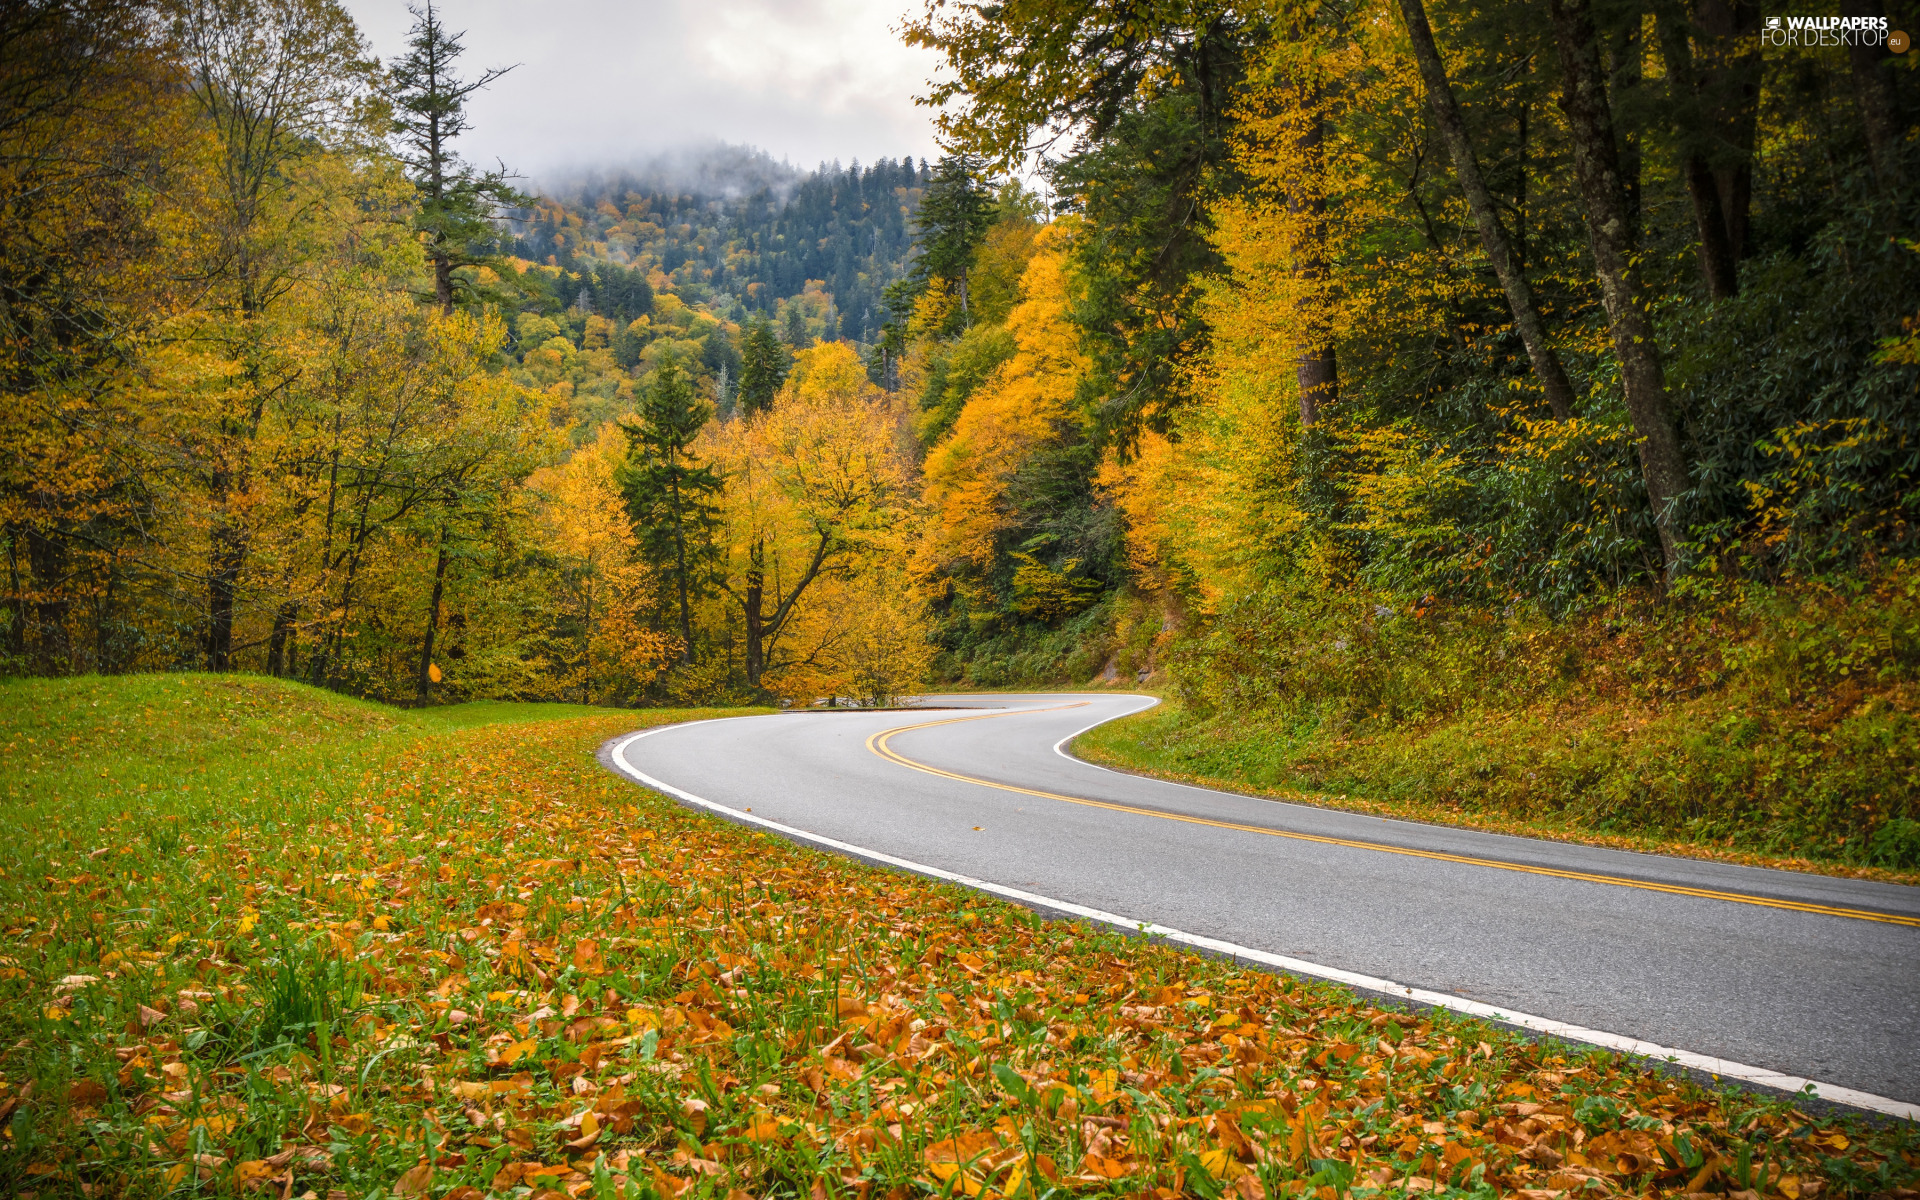 Tennessee State, forest, viewes, autumn, trees, Great Smoky Mountains National Park, fallen, Leaf, grass, color, turn, Way, Mountains, The United States